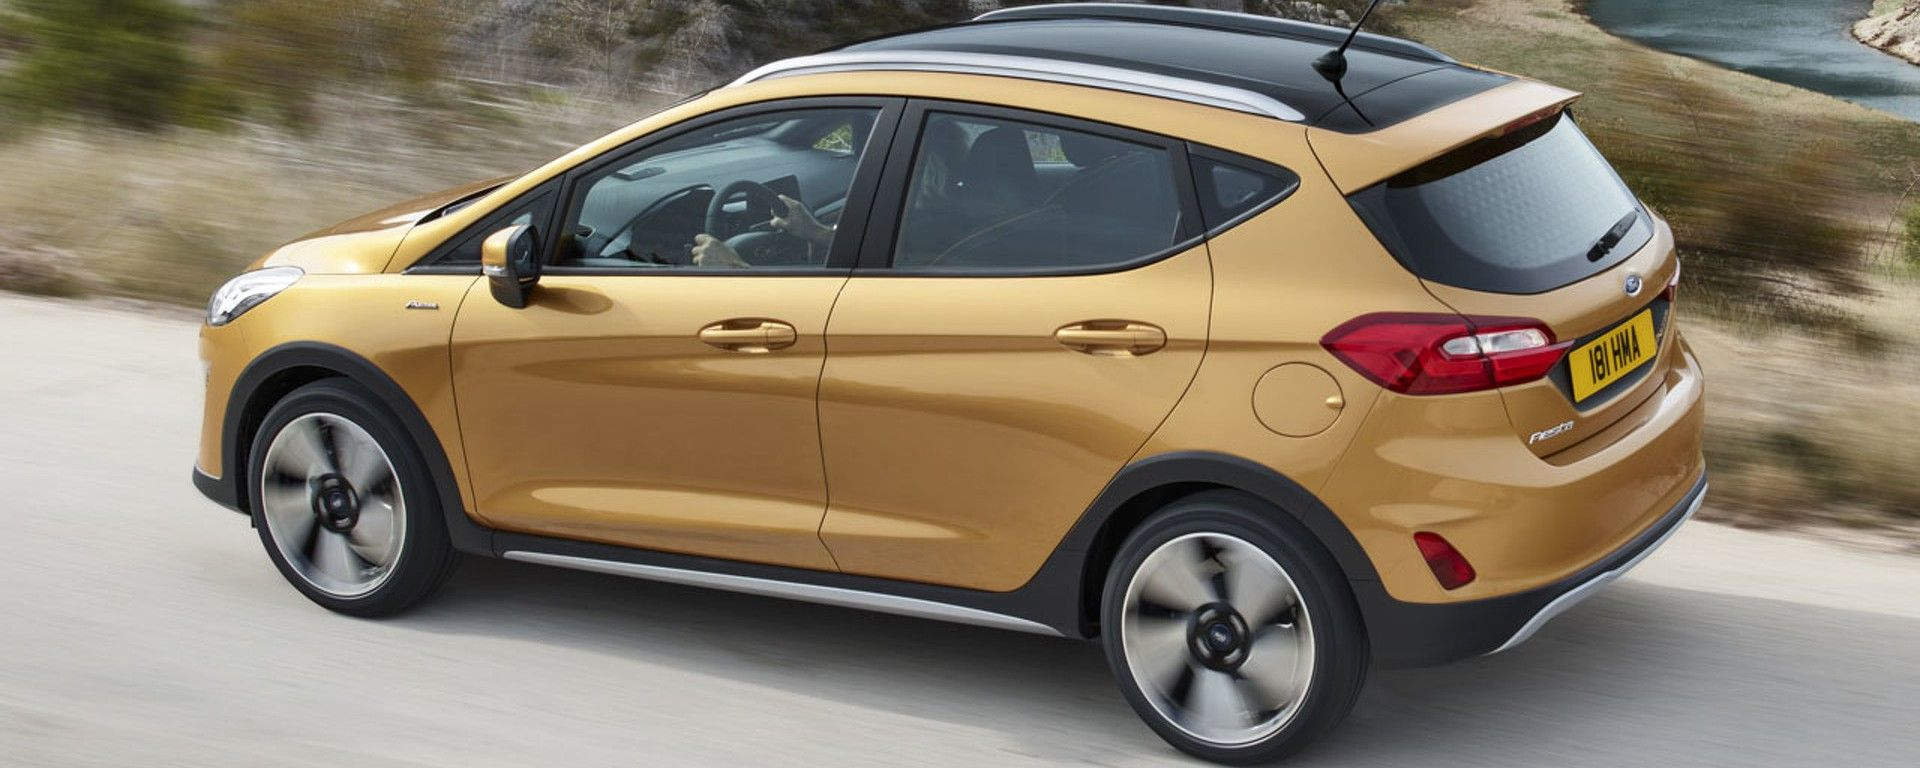 ford fiesta     ford cars